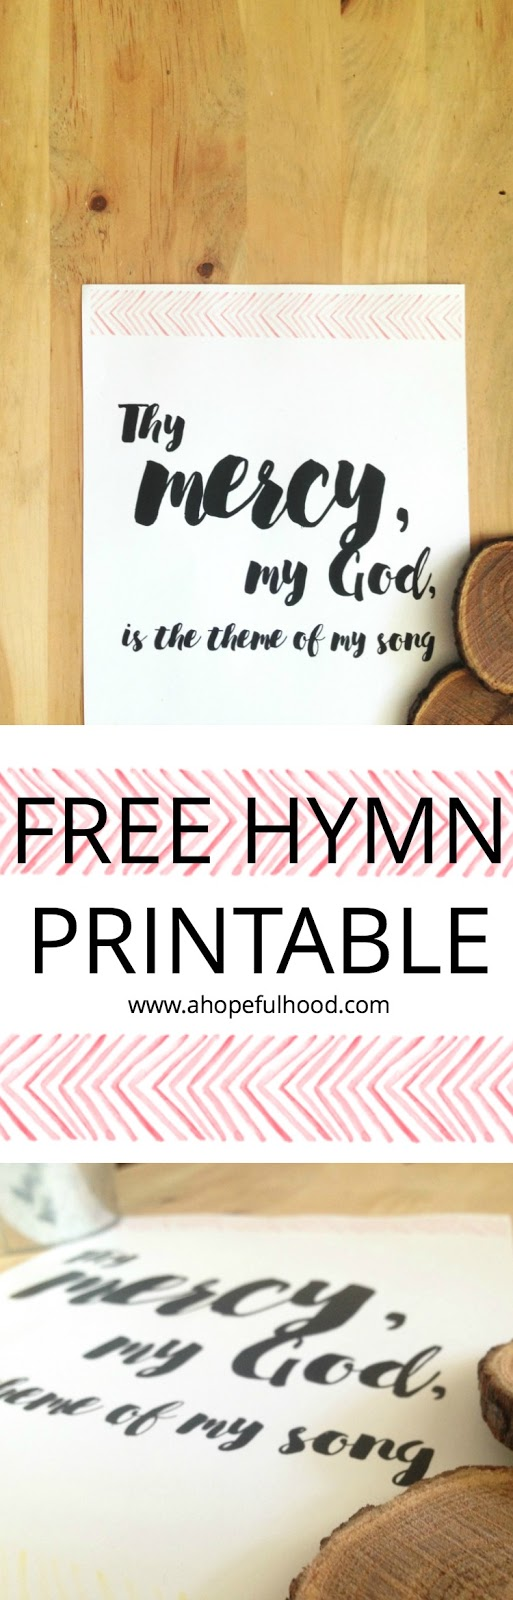 Free hymn printable PDF from @ahopefulhood